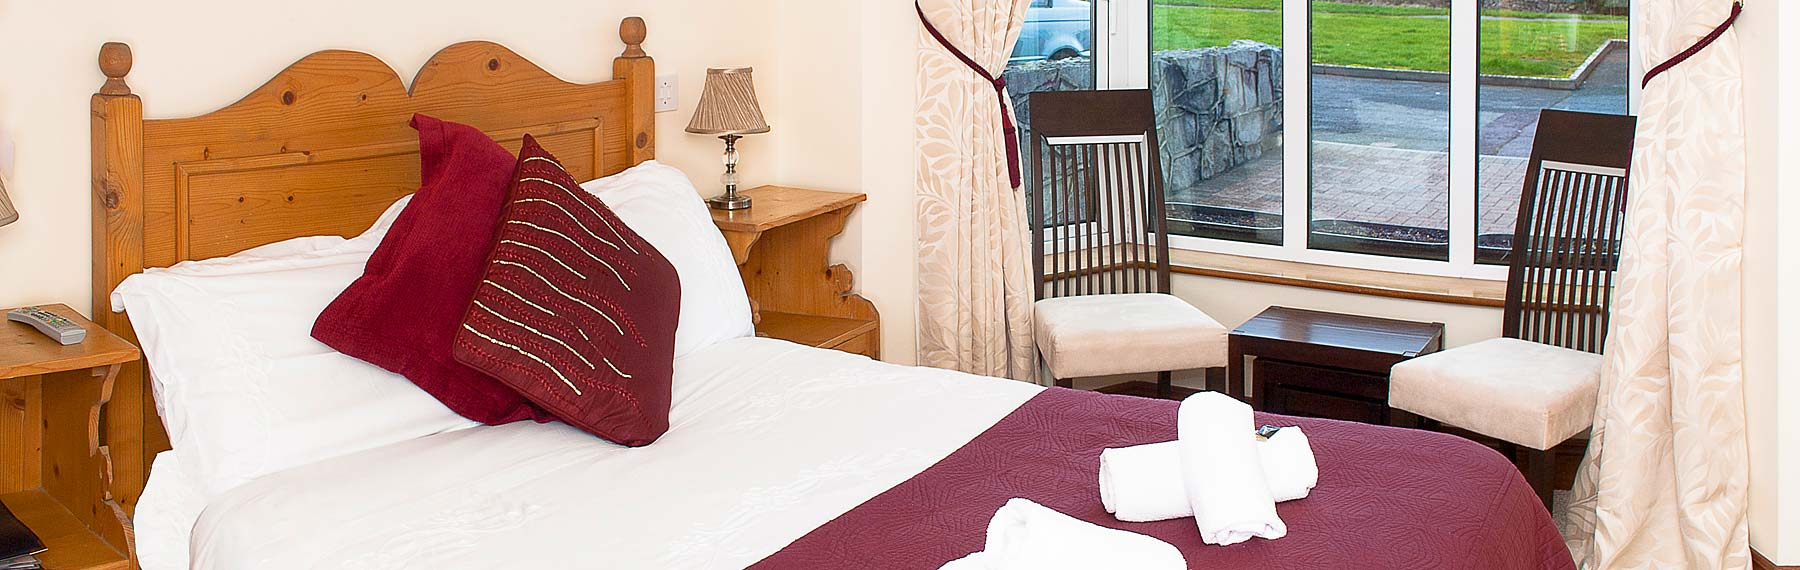 Rusheen Bay House Bed And Breakfast Galway